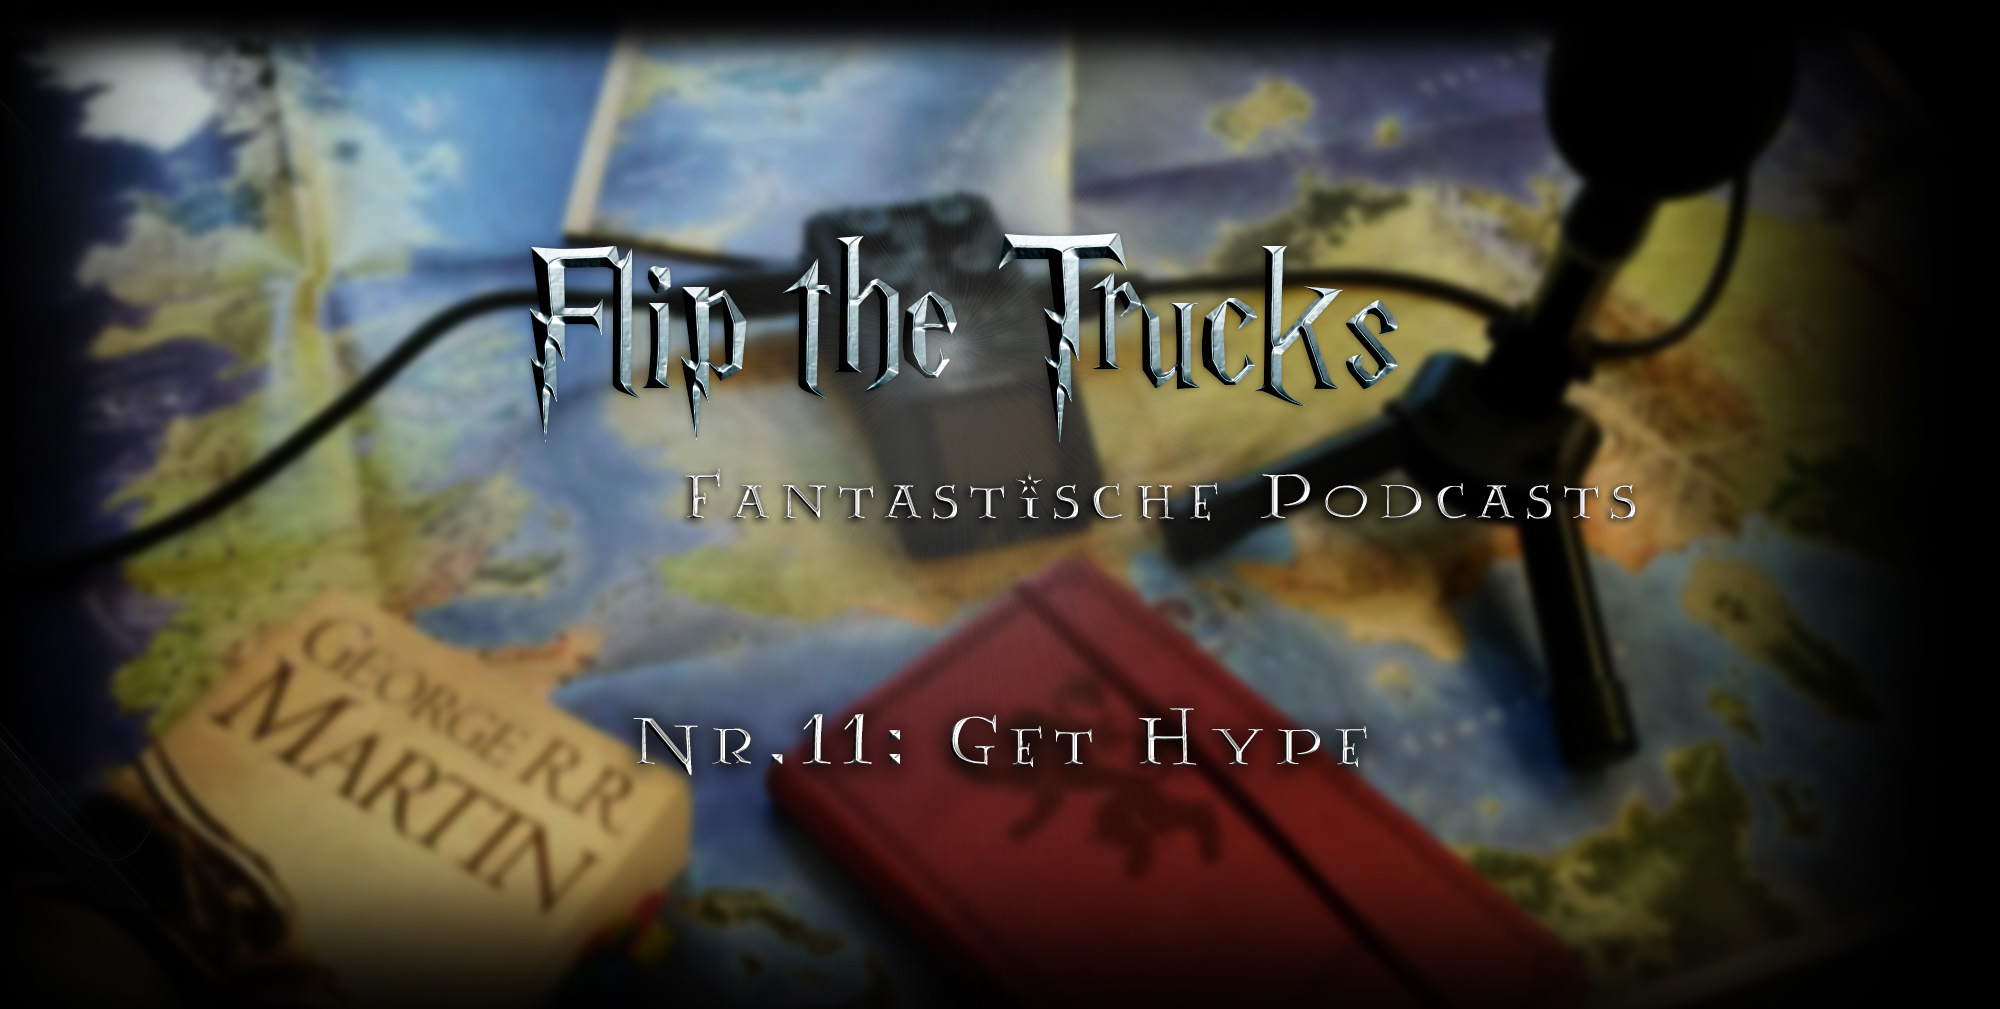 Flip the Truck | Fantastic Podcasts | Get Hype